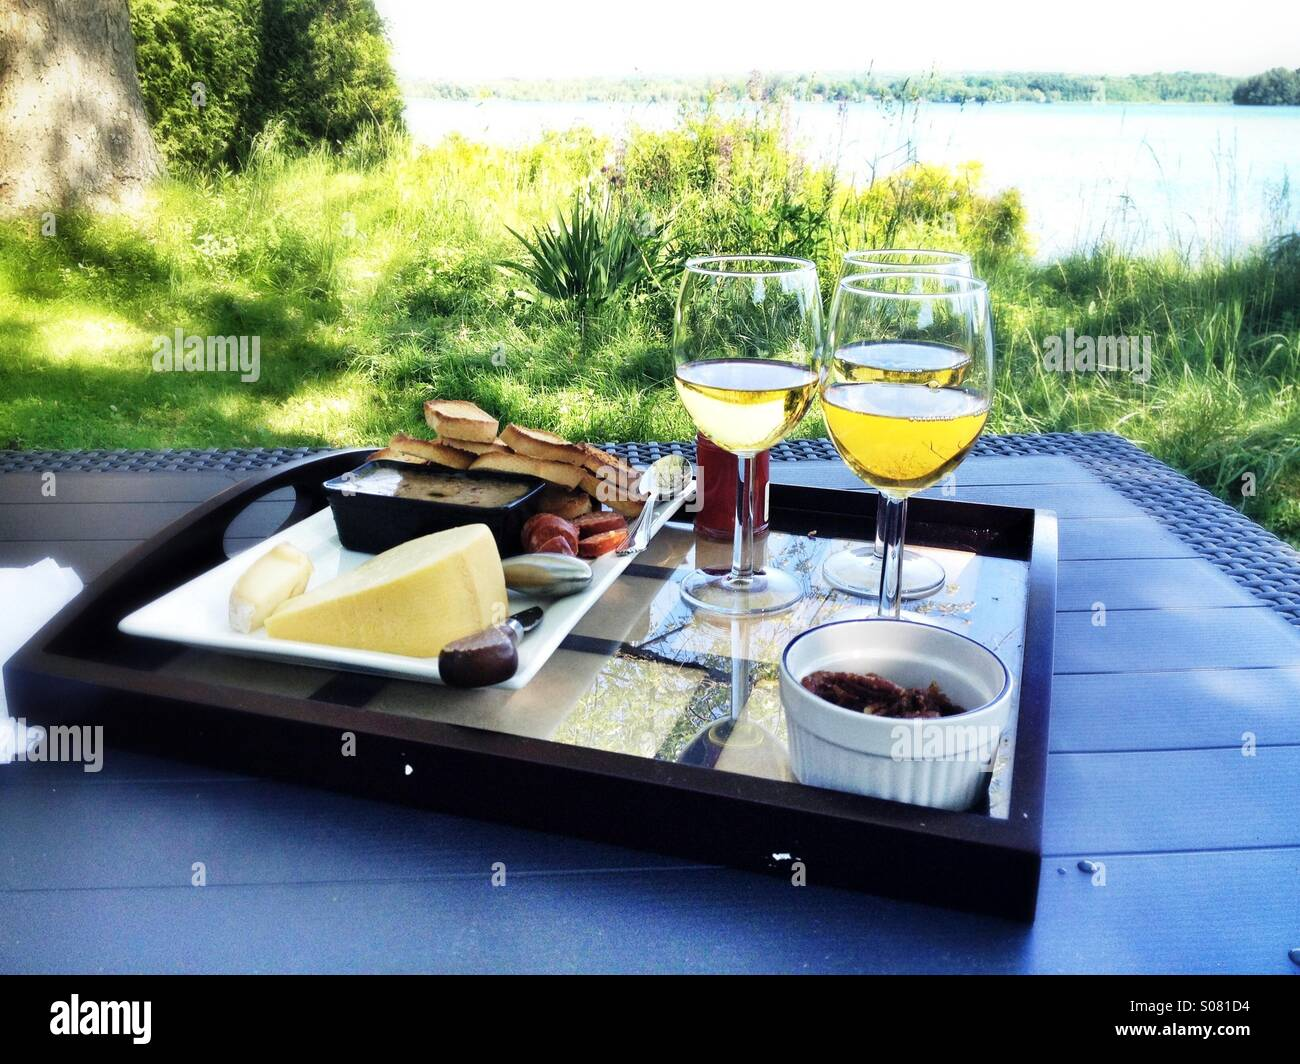 Lunch by the lake - Stock Image